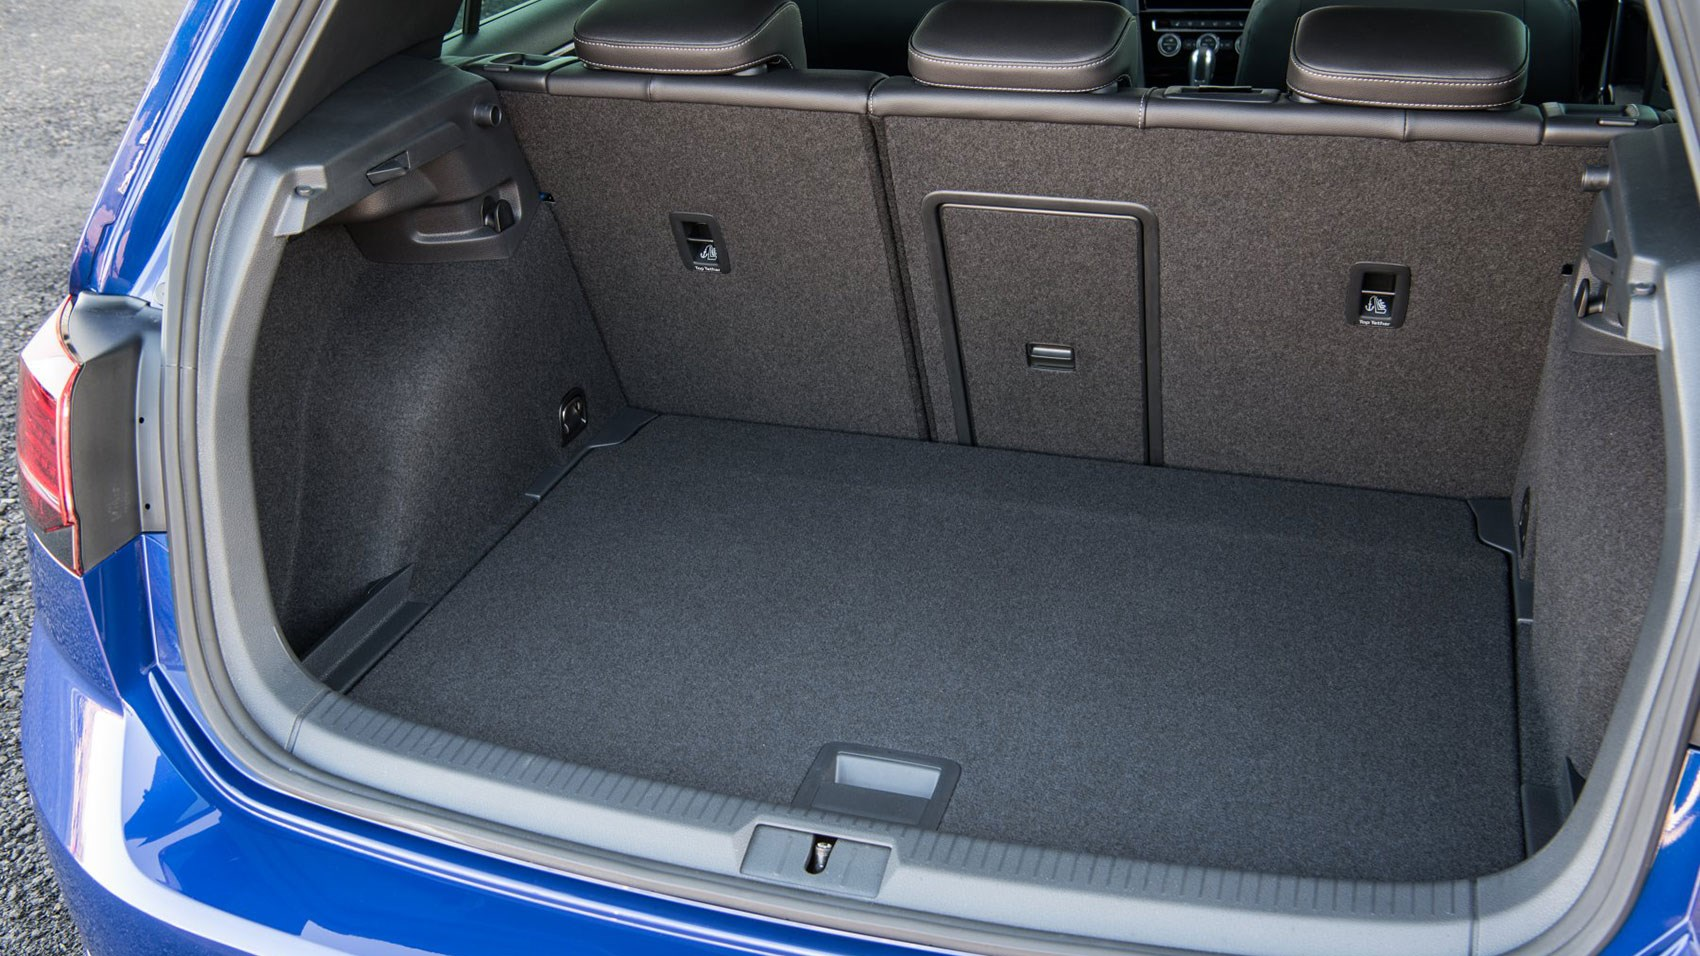 VW Golf R boot space and practicality